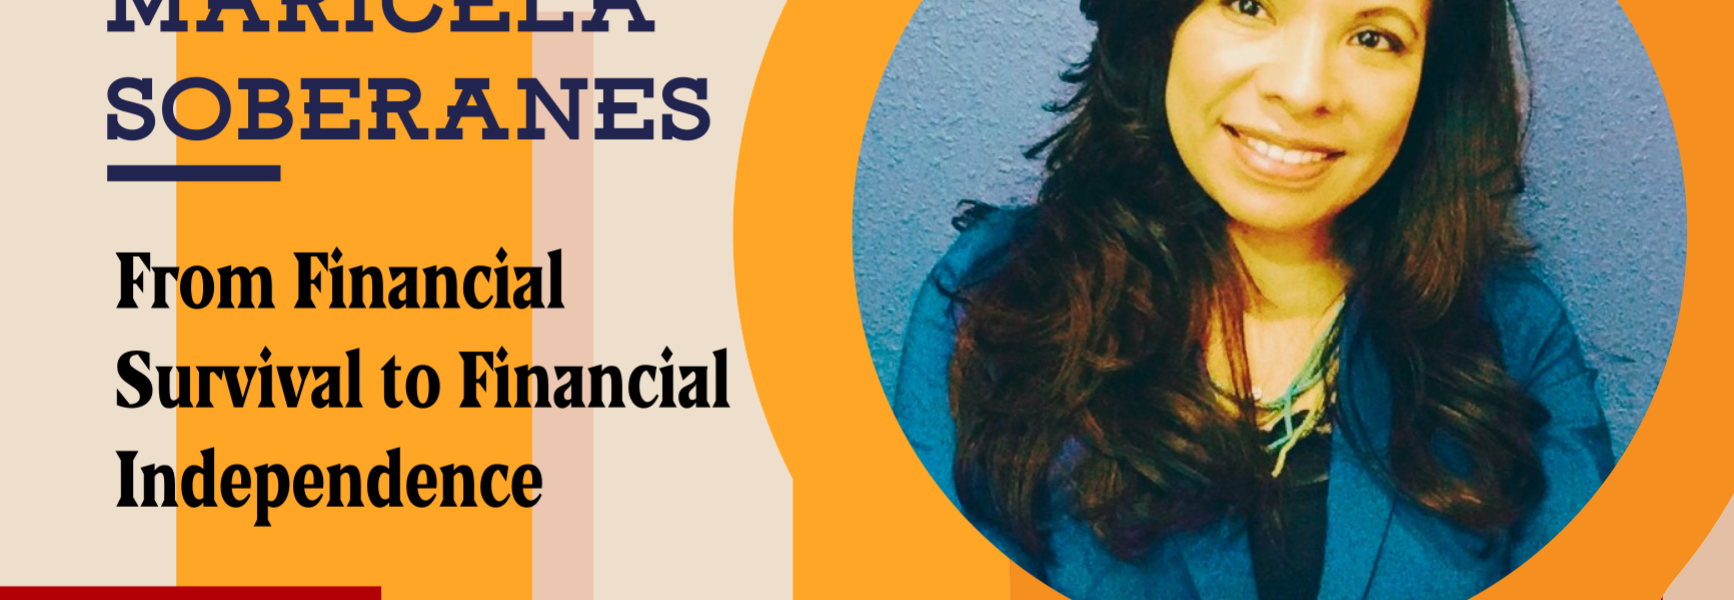 From Financial Survival to Financial Independence with Real Estate Investing with Maricela Soberanes